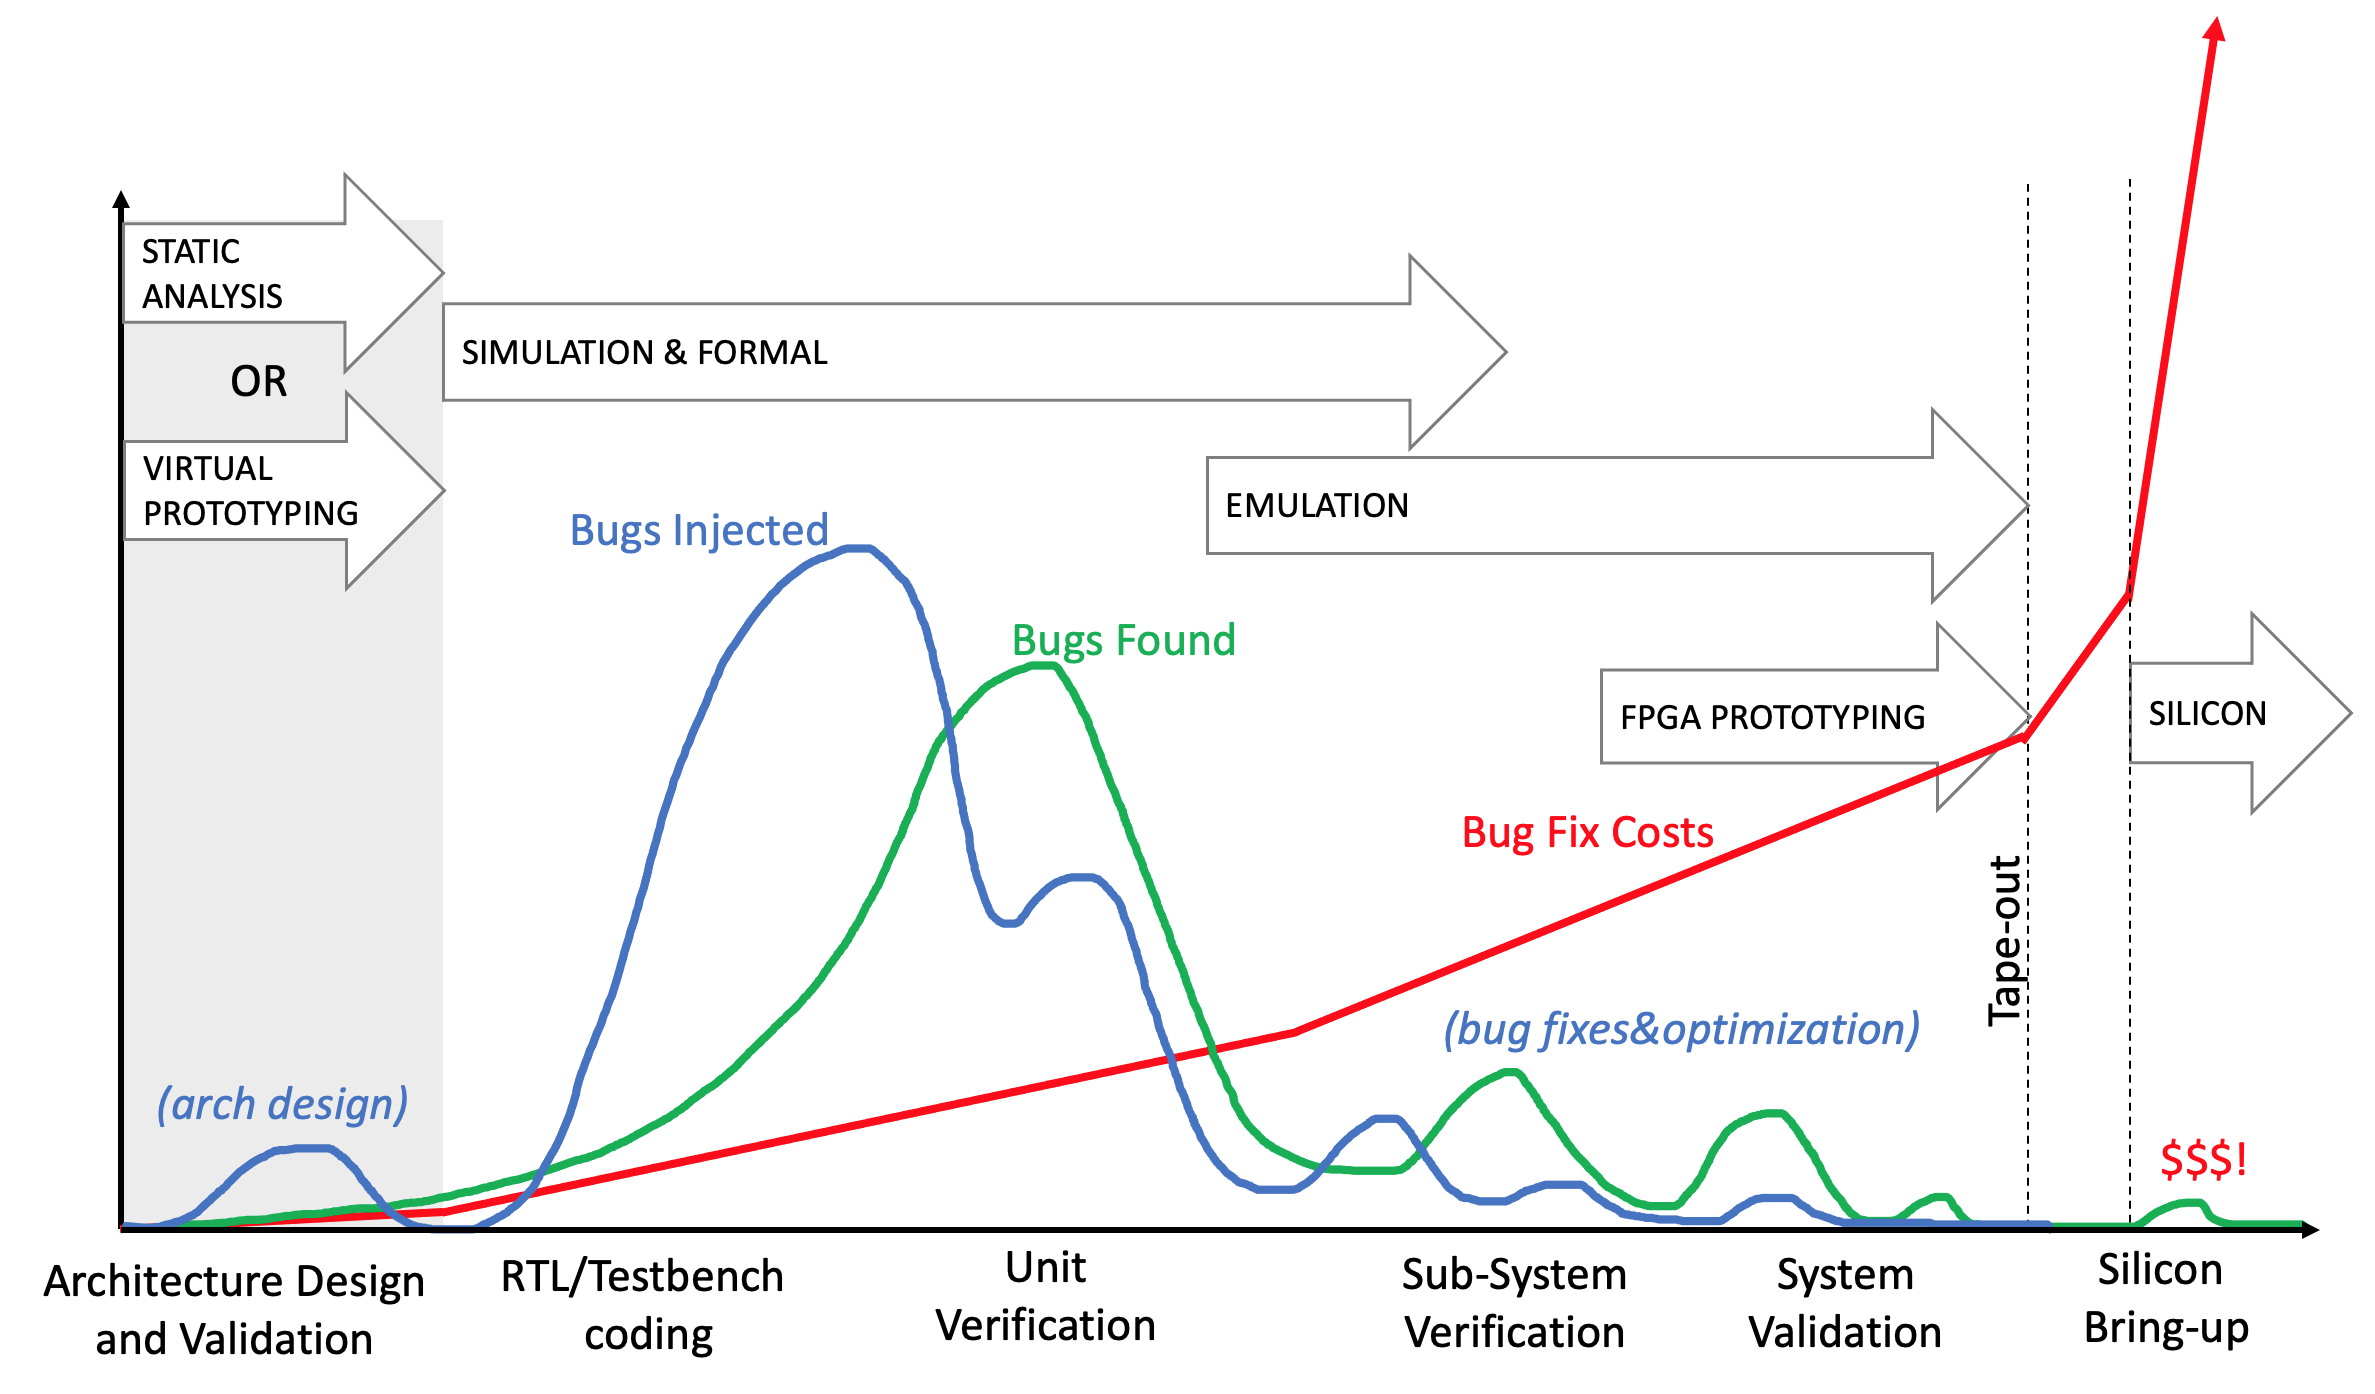 Bugs injected bugs found chart